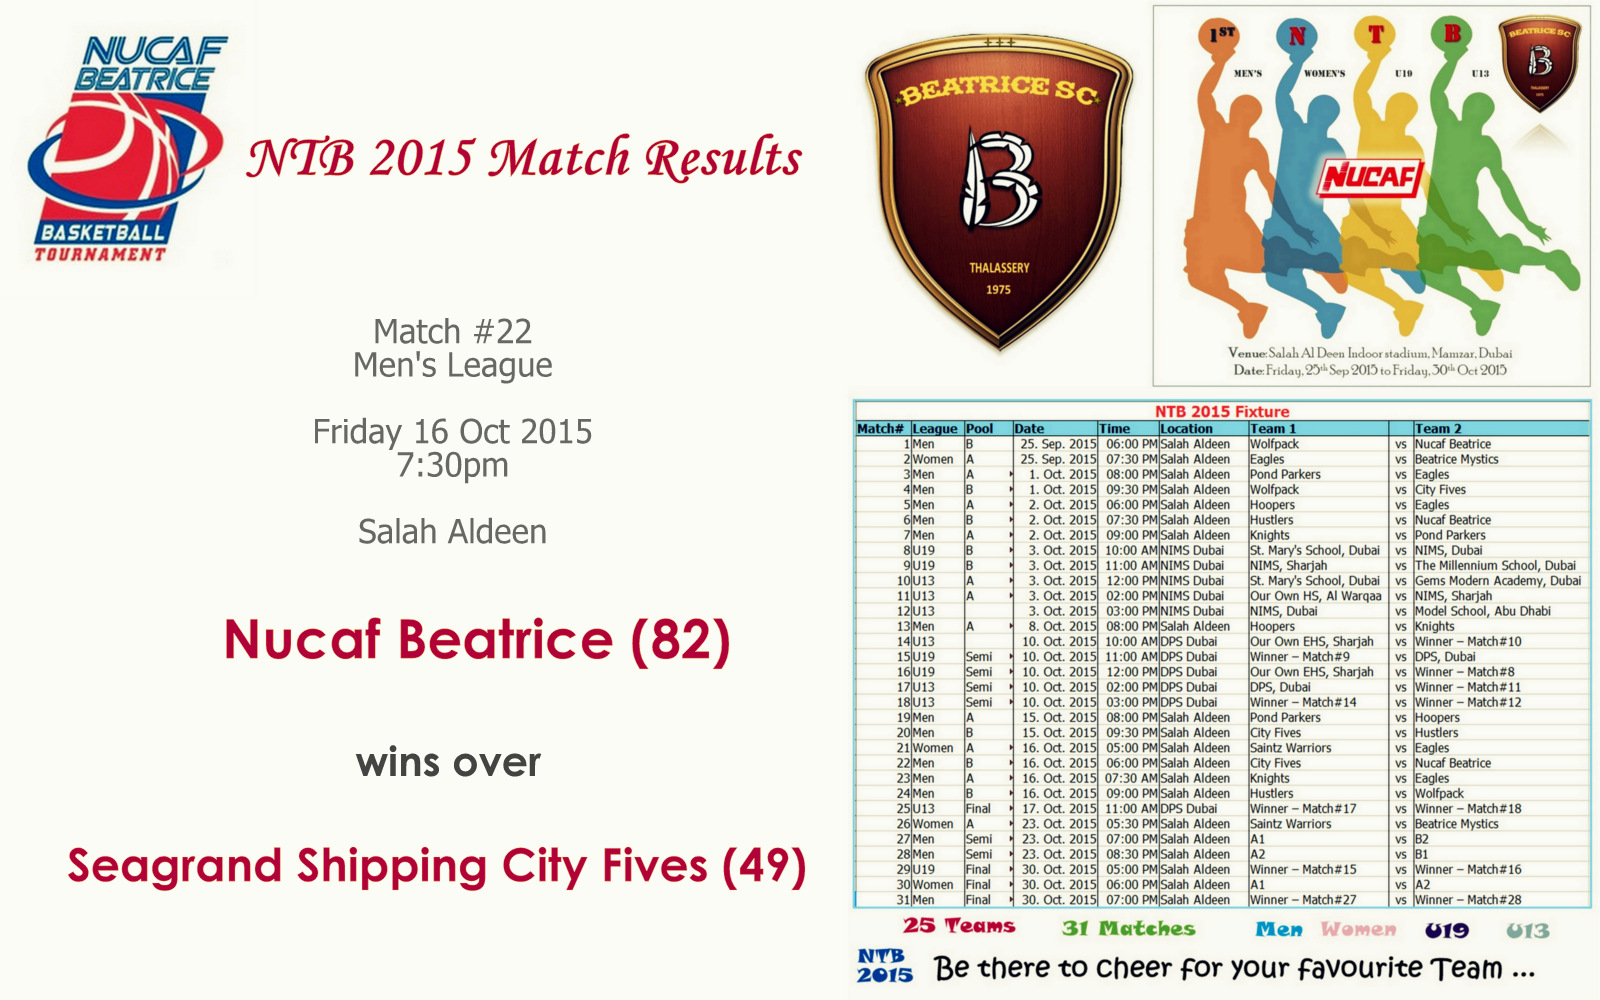 NTB 2015 – Match #22 | Seagrand Shipping City Fives (49) Vs Nucaf Beatrice (82)